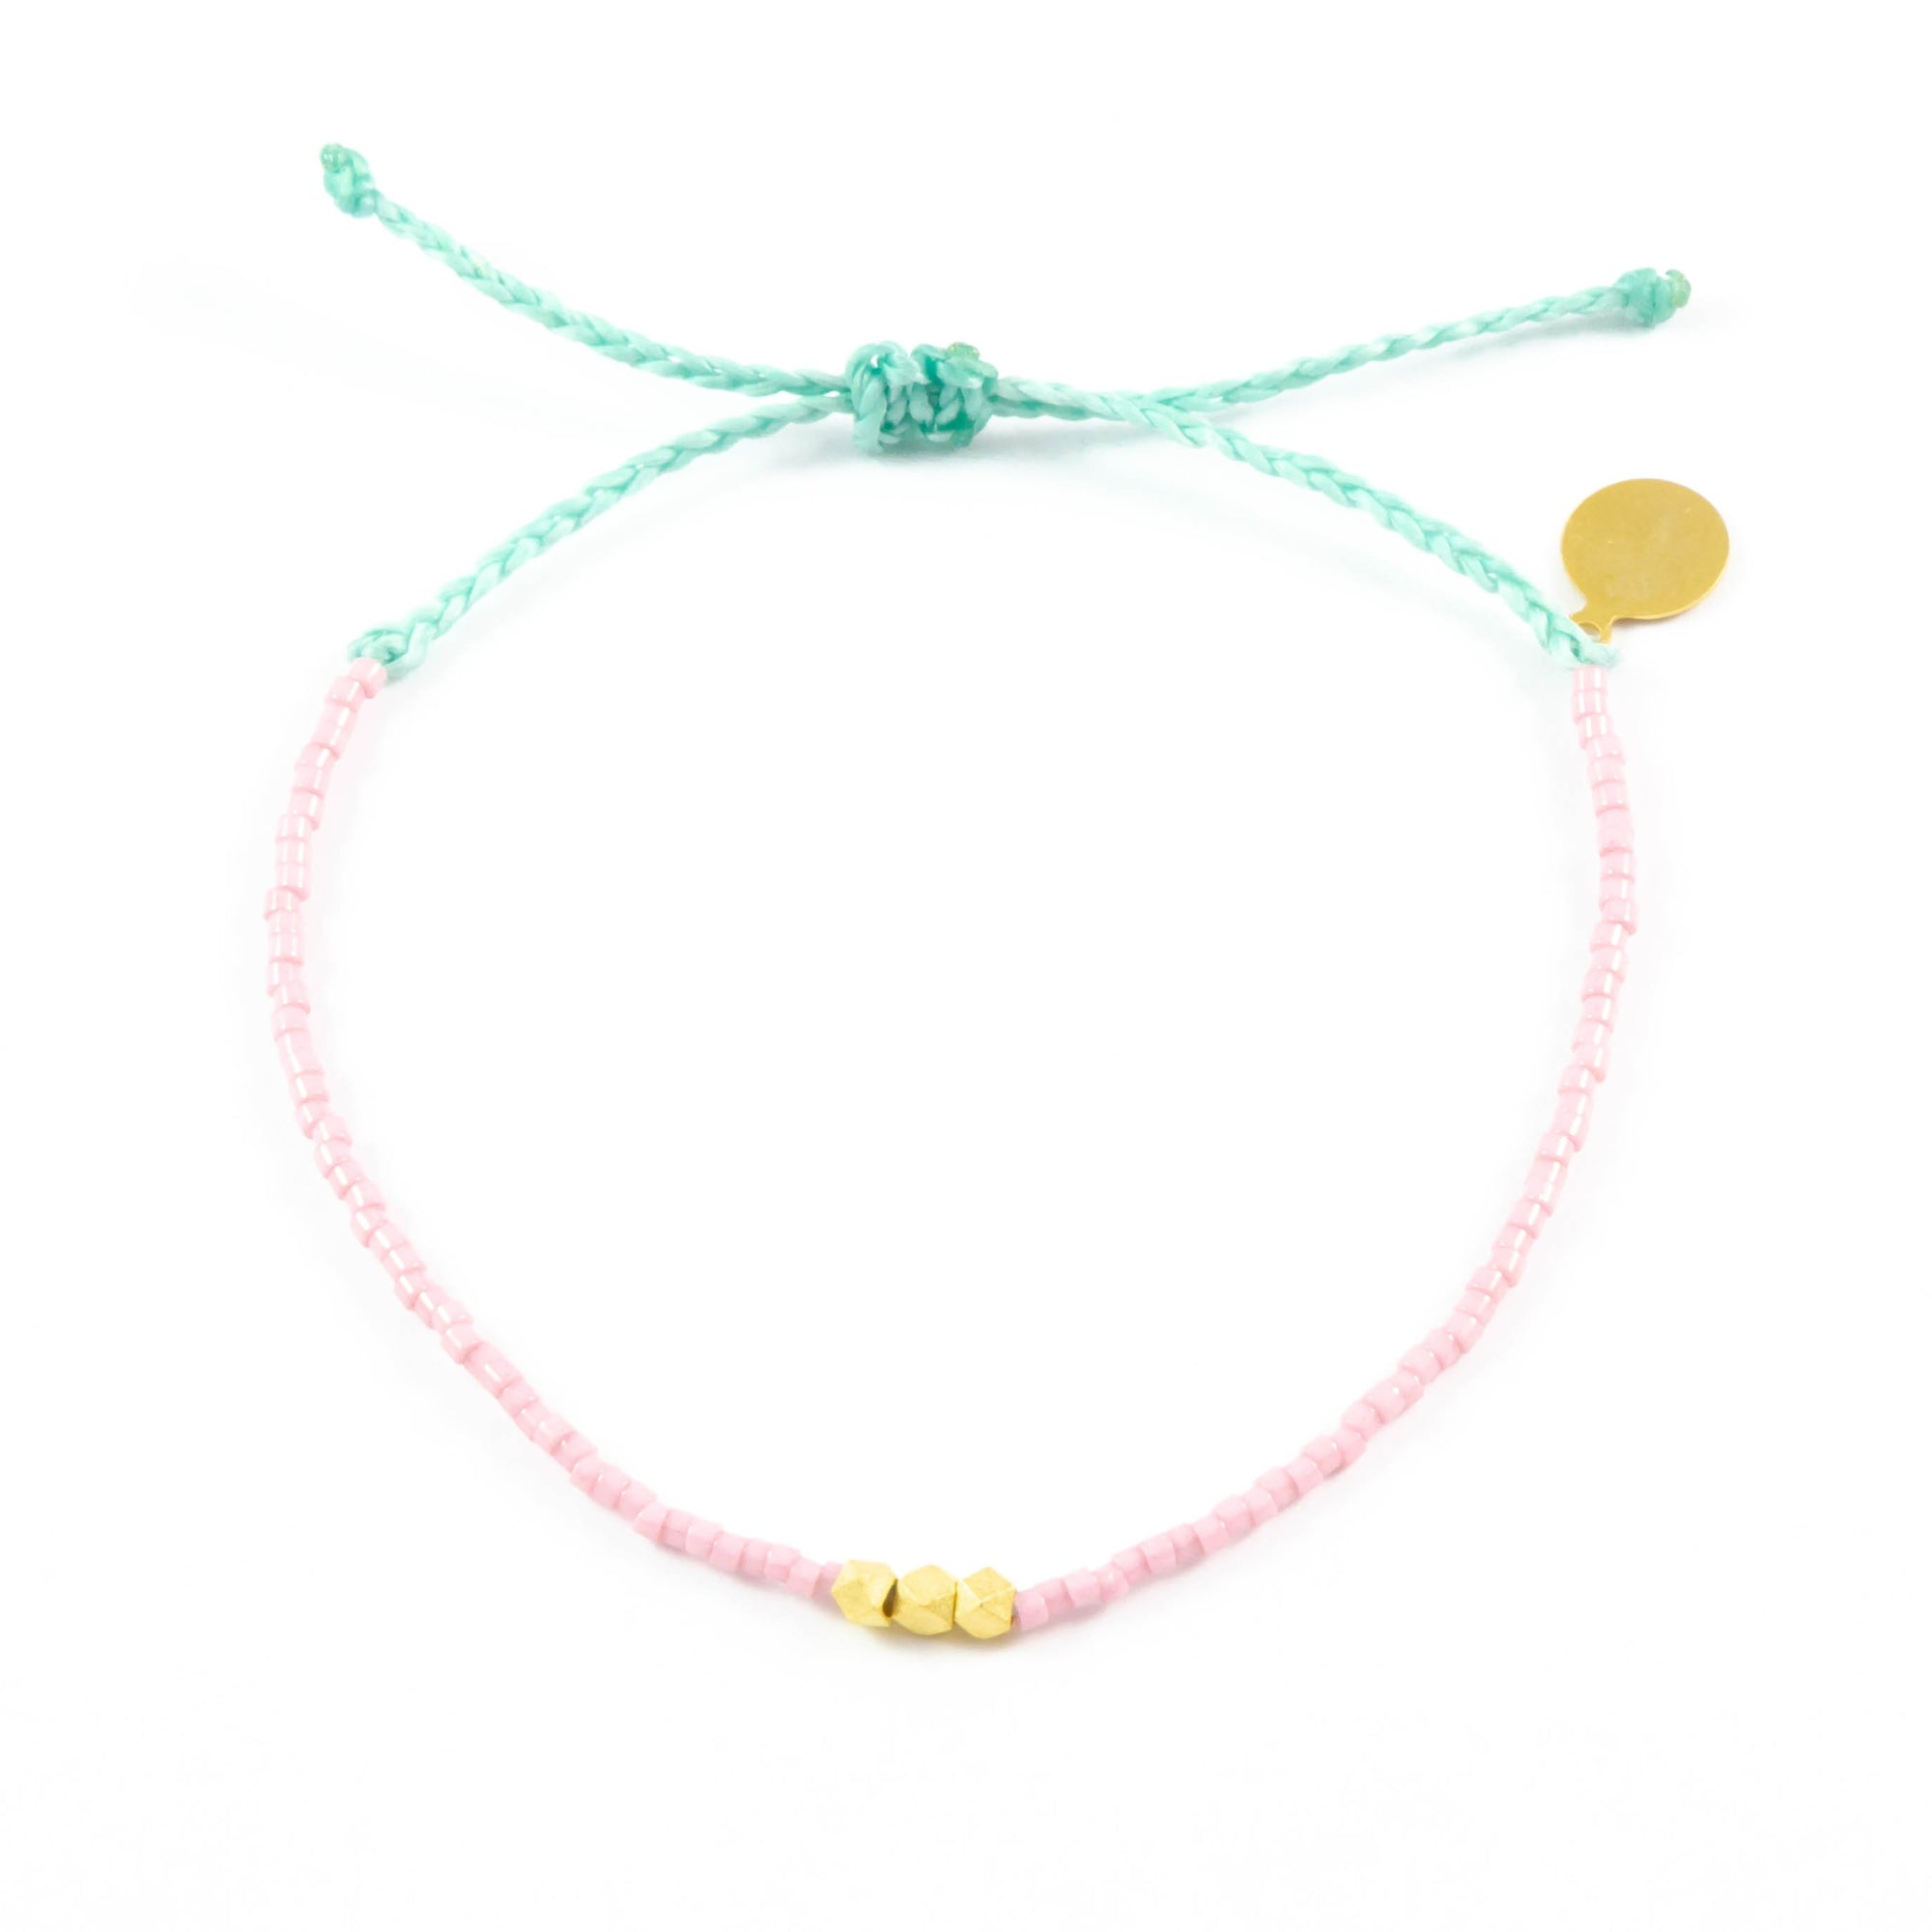 Blush & Cucumber Gold Bead Bracelet